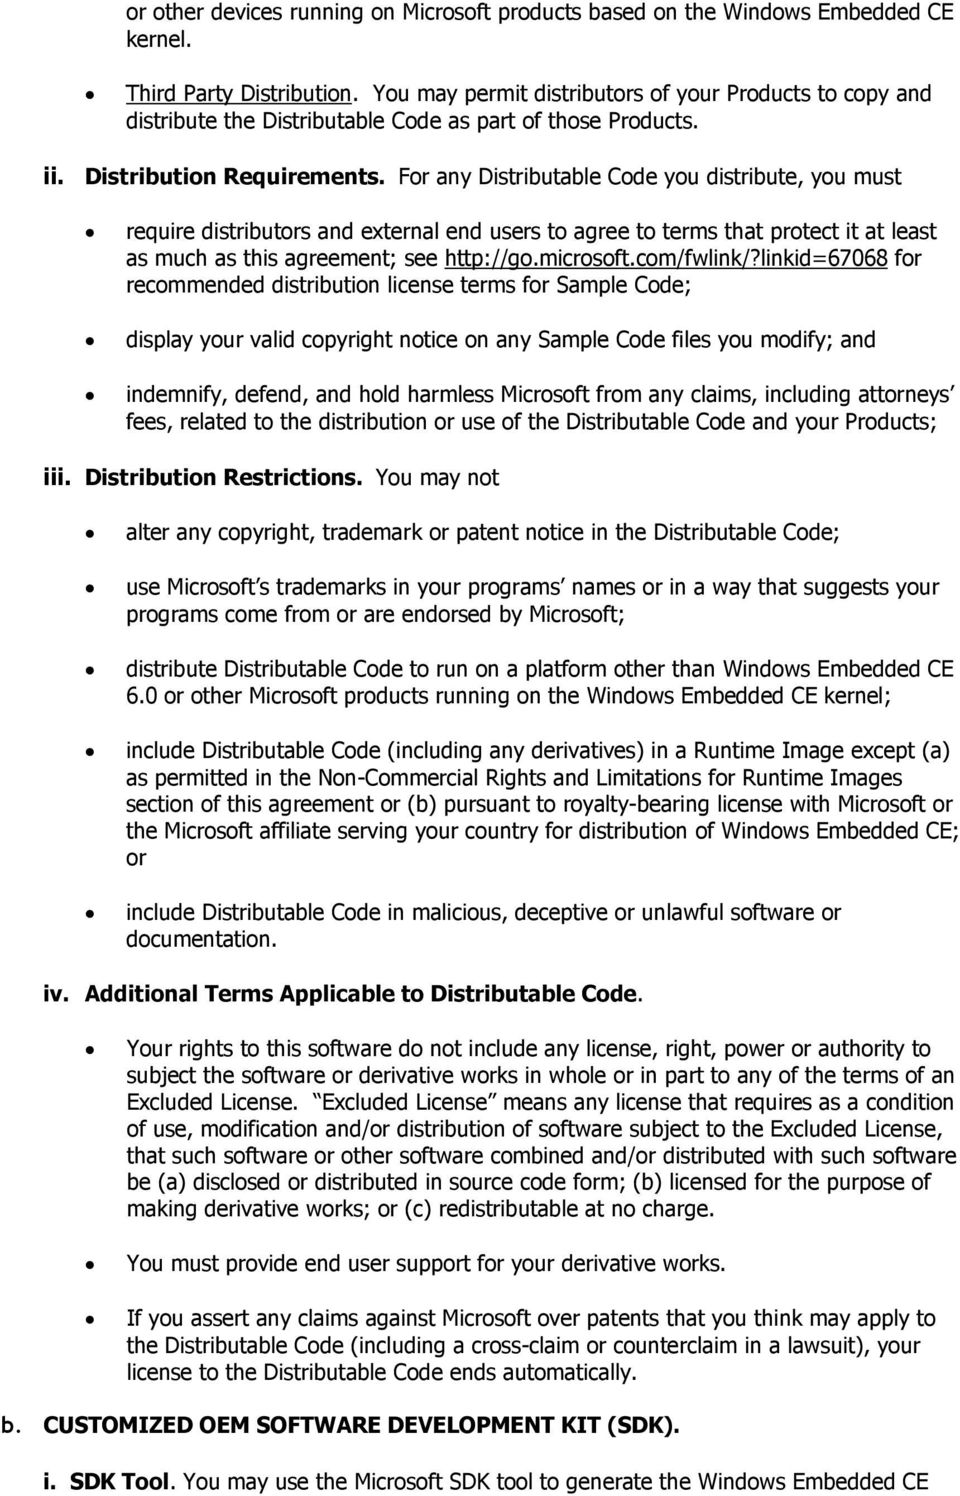 For any Distributable Code you distribute, you must require distributors and external end users to agree to terms that protect it at least as much as this agreement; see http://go.microsoft.